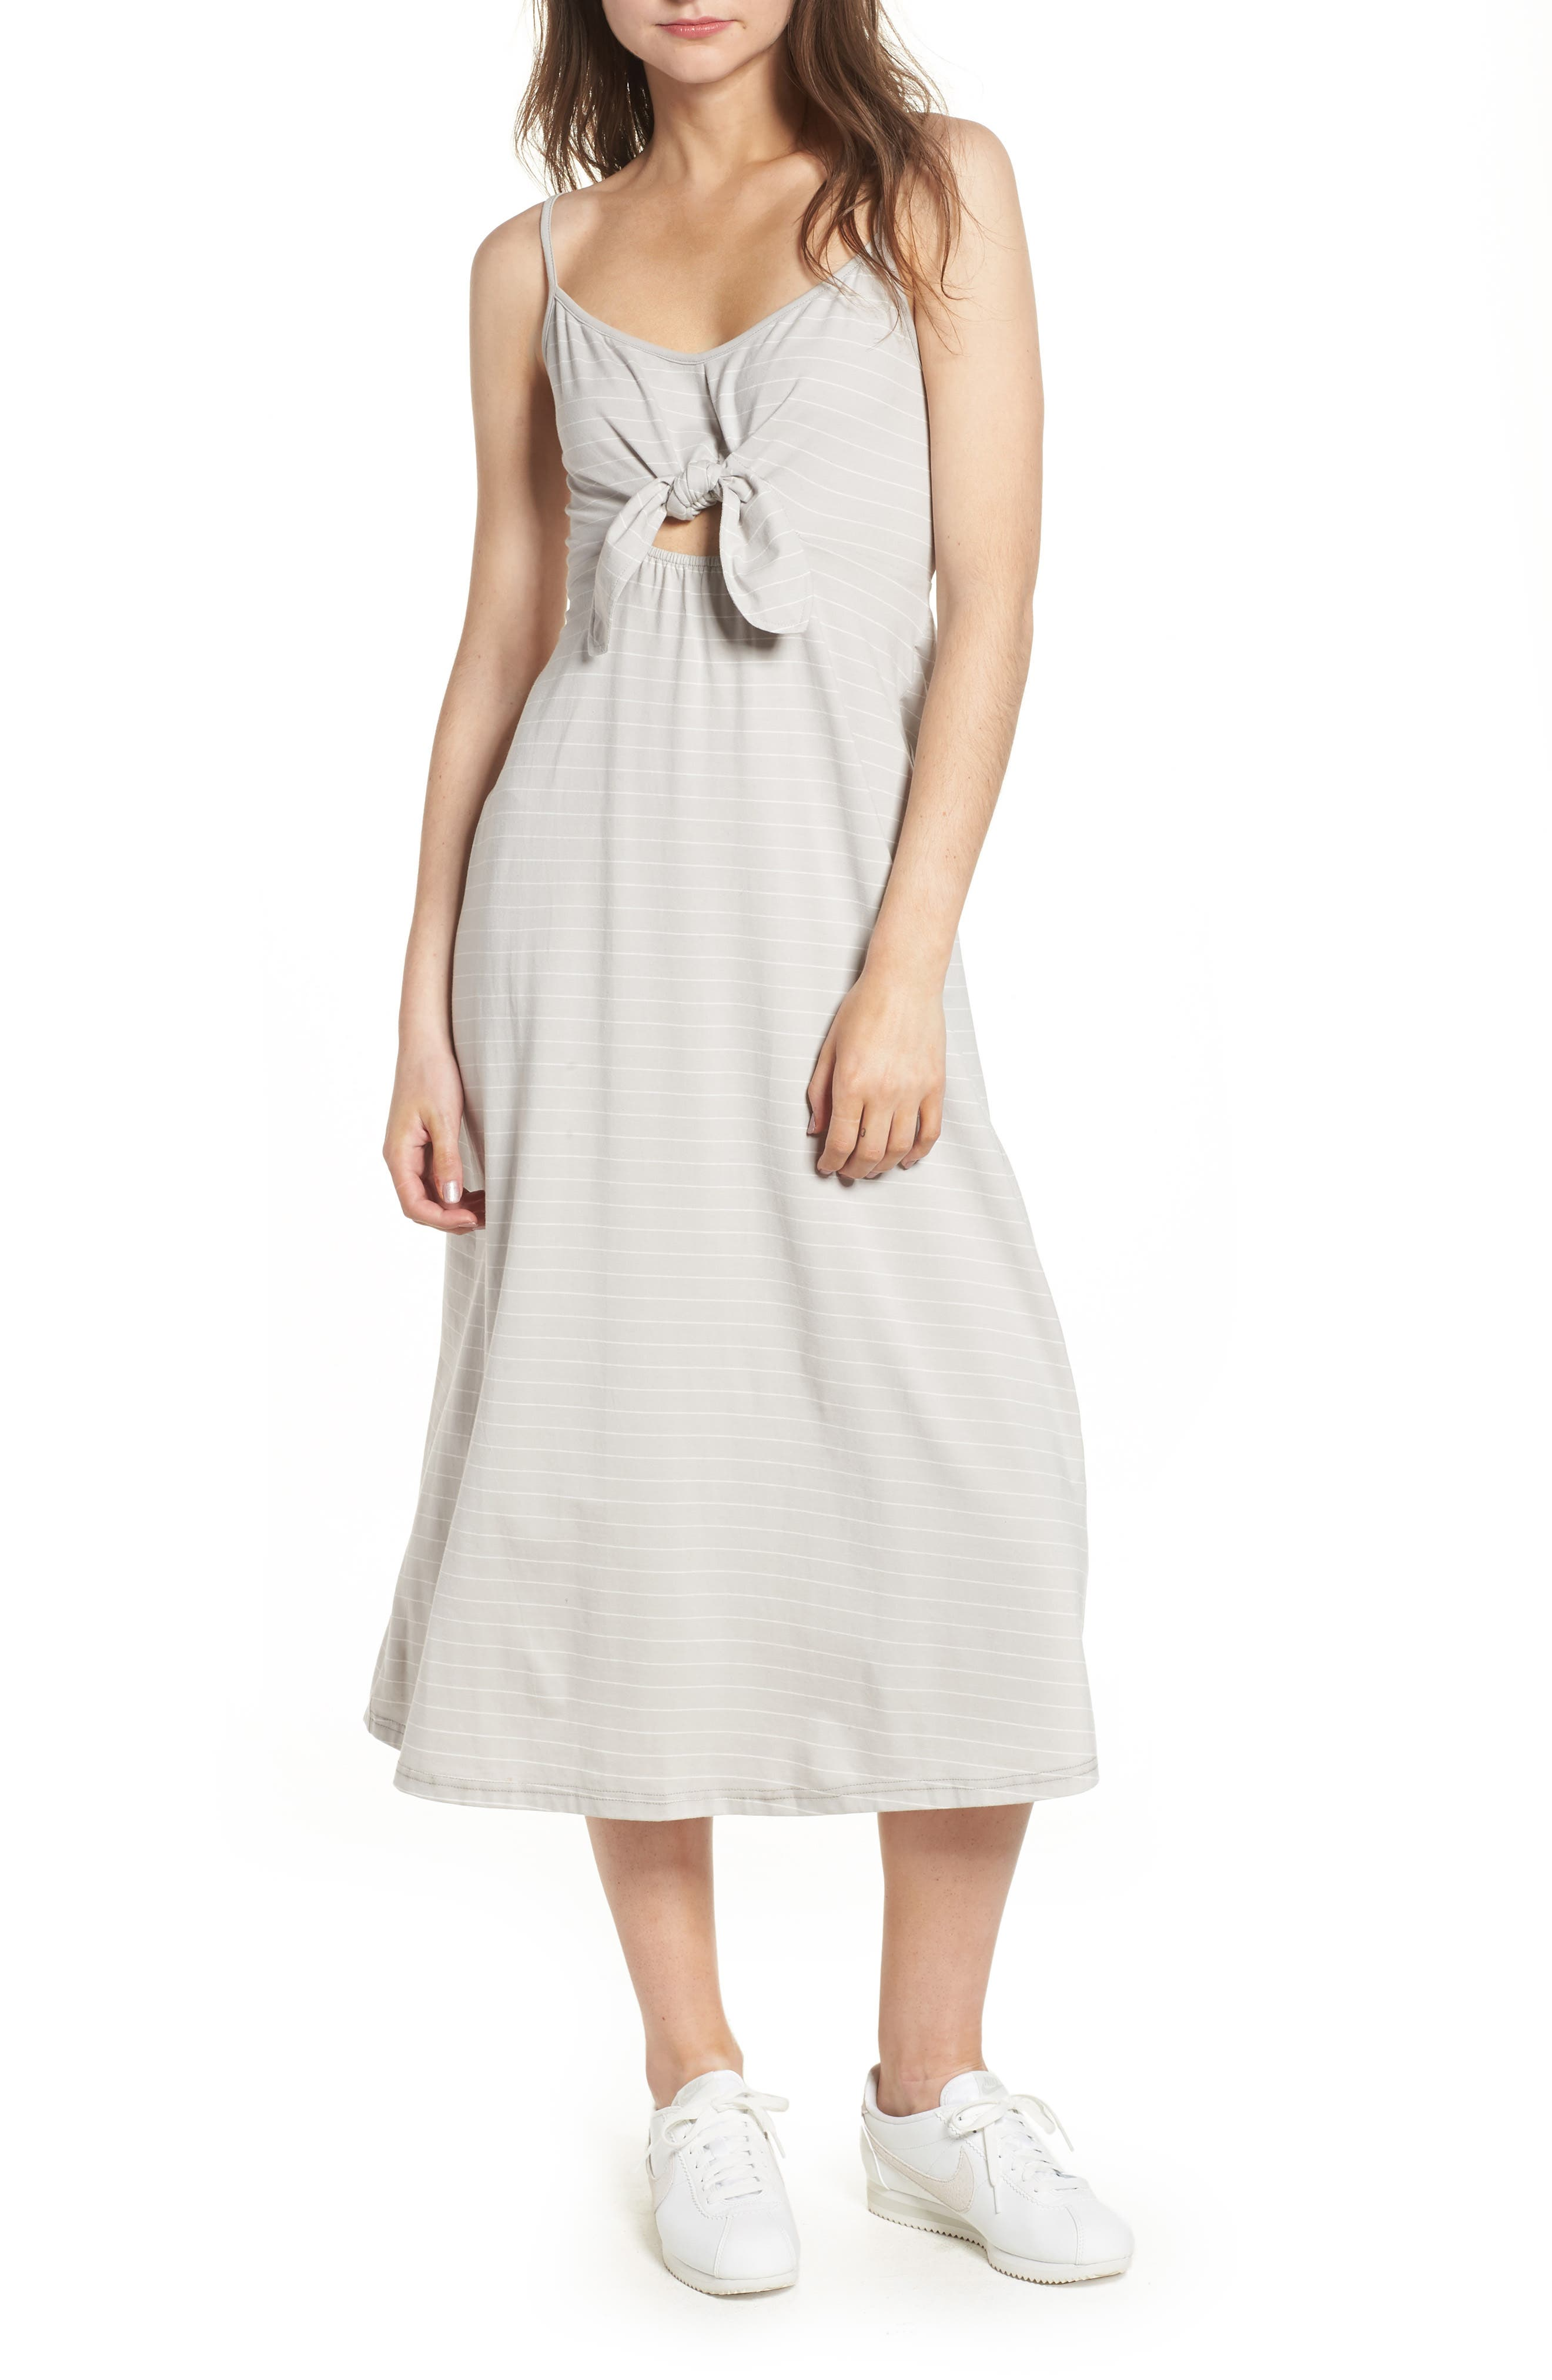 Suzanne Knot Front Dress,                             Main thumbnail 2, color,